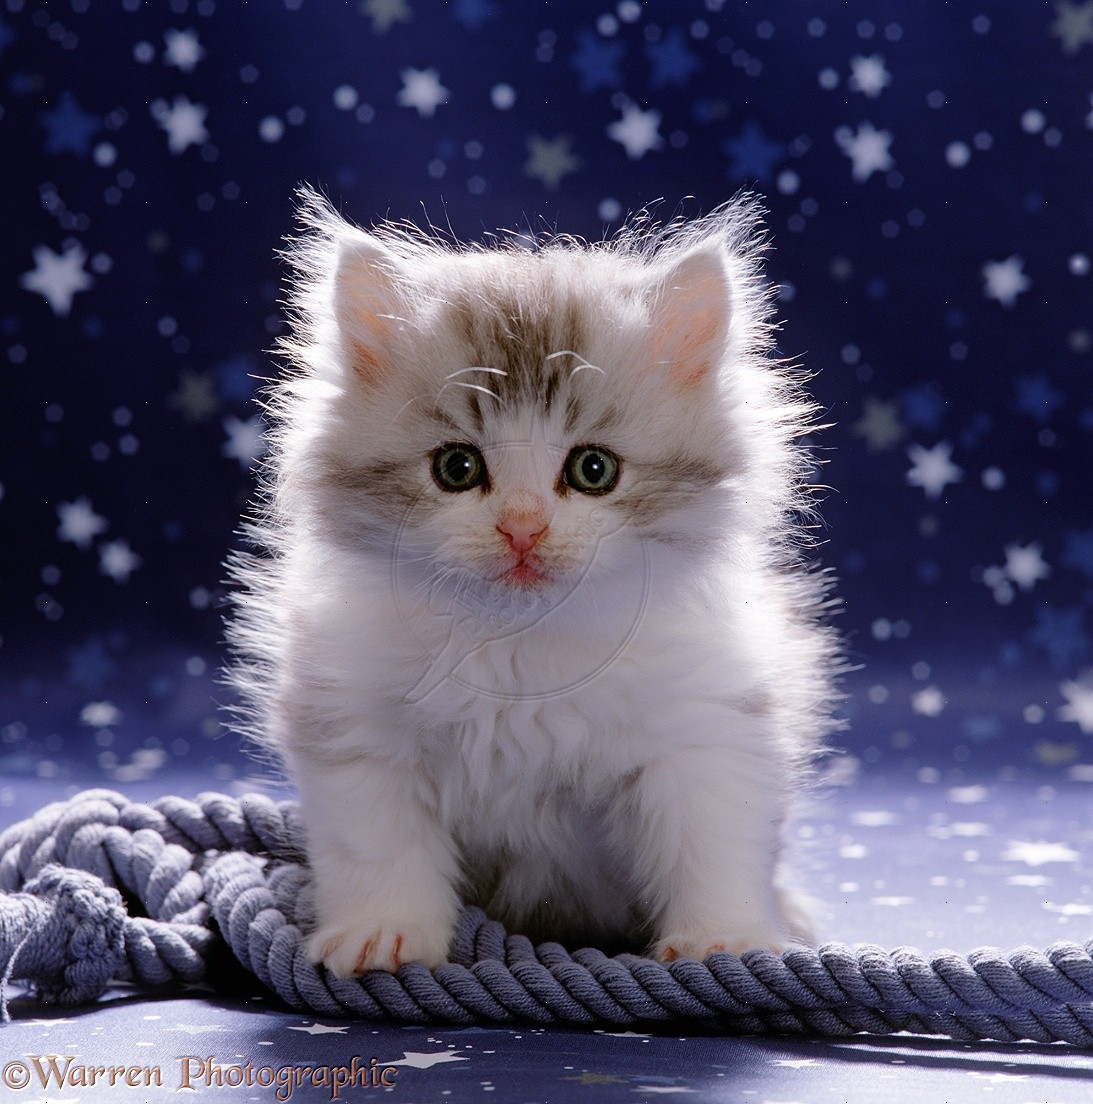 Kitten Wallpapers Android Apps on Google Play 1093x1104